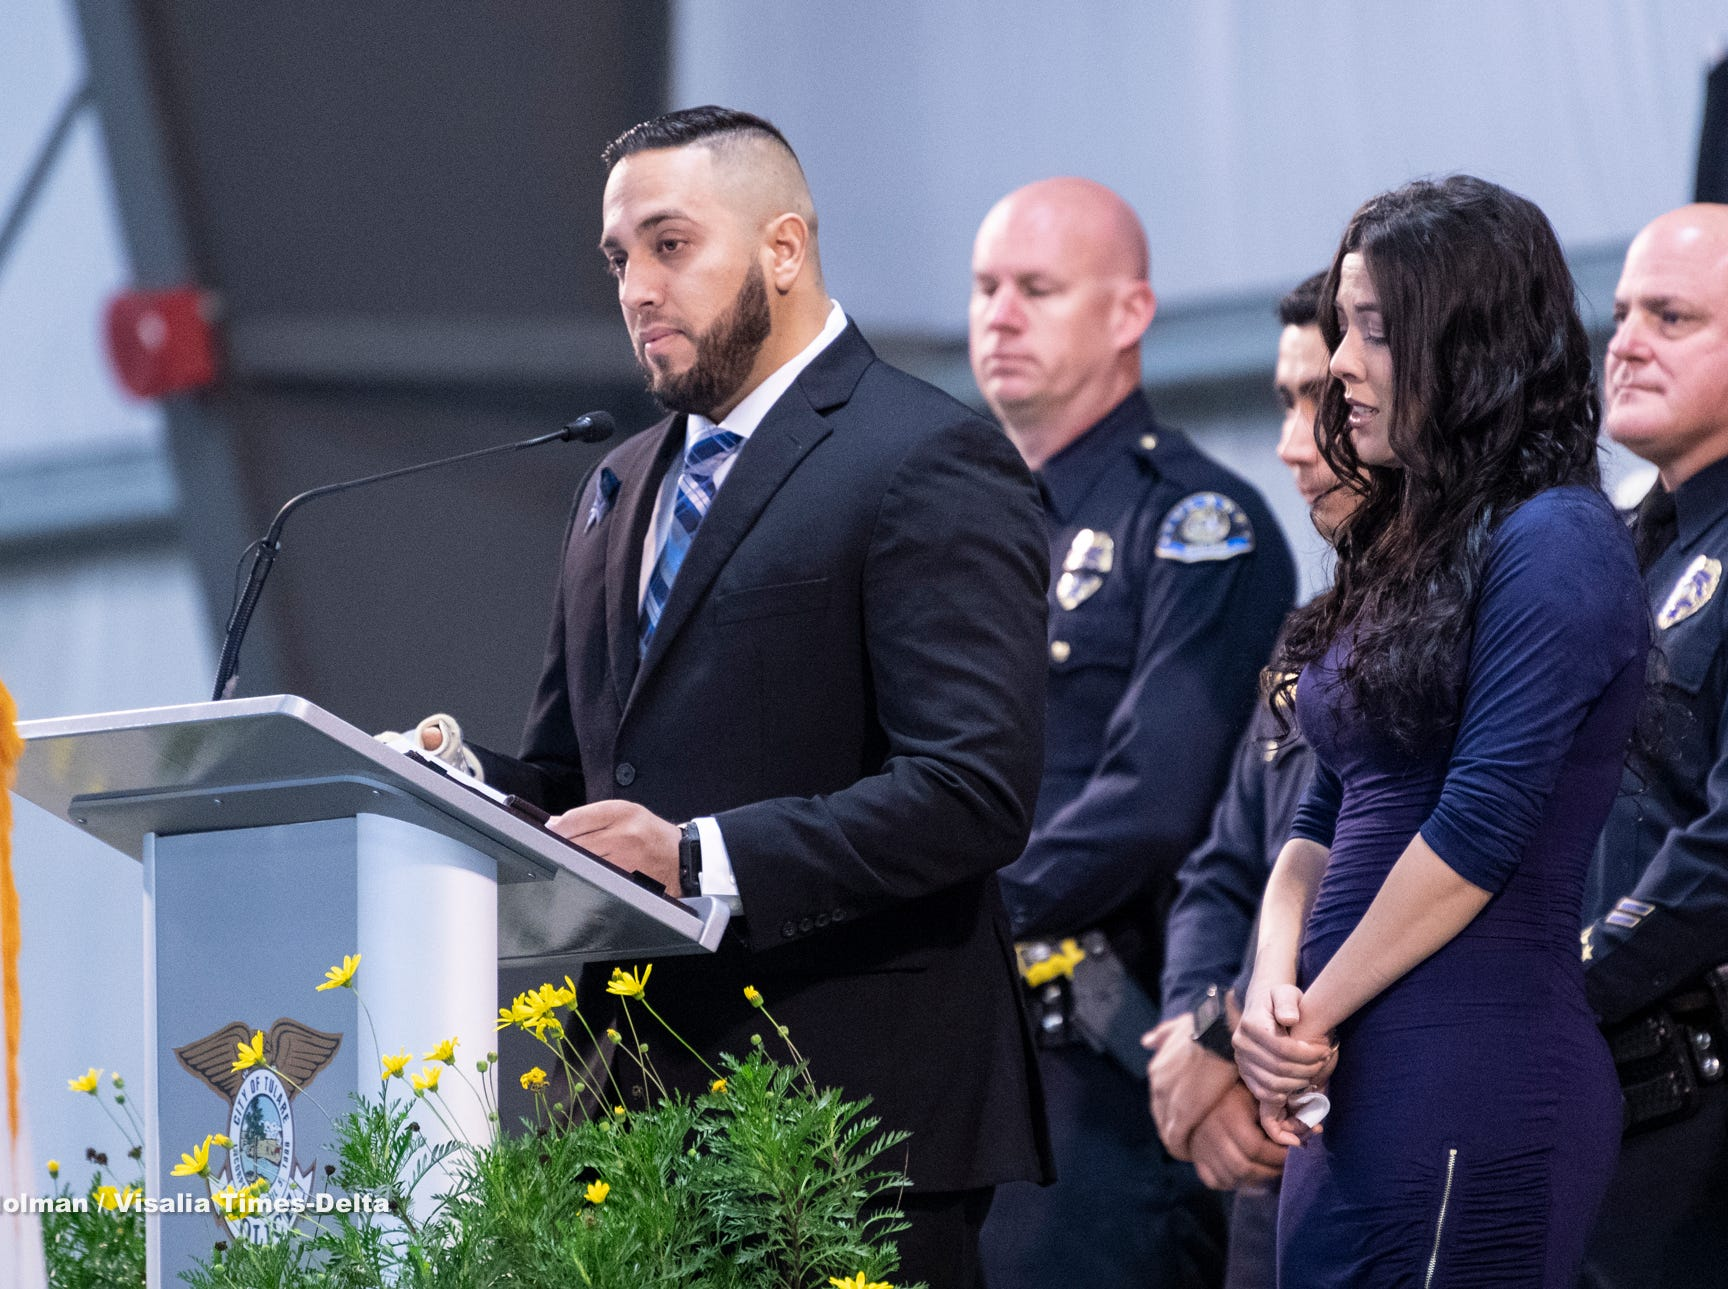 Officer Ryan Garcia speaks about his brief time with his K-9 partner Bane during a memorial for the dog on Wednesday, January 9, 2019. Bane was killed during an officer-involved shooting on December 9 of last year and is credited with saving Garcia's life.